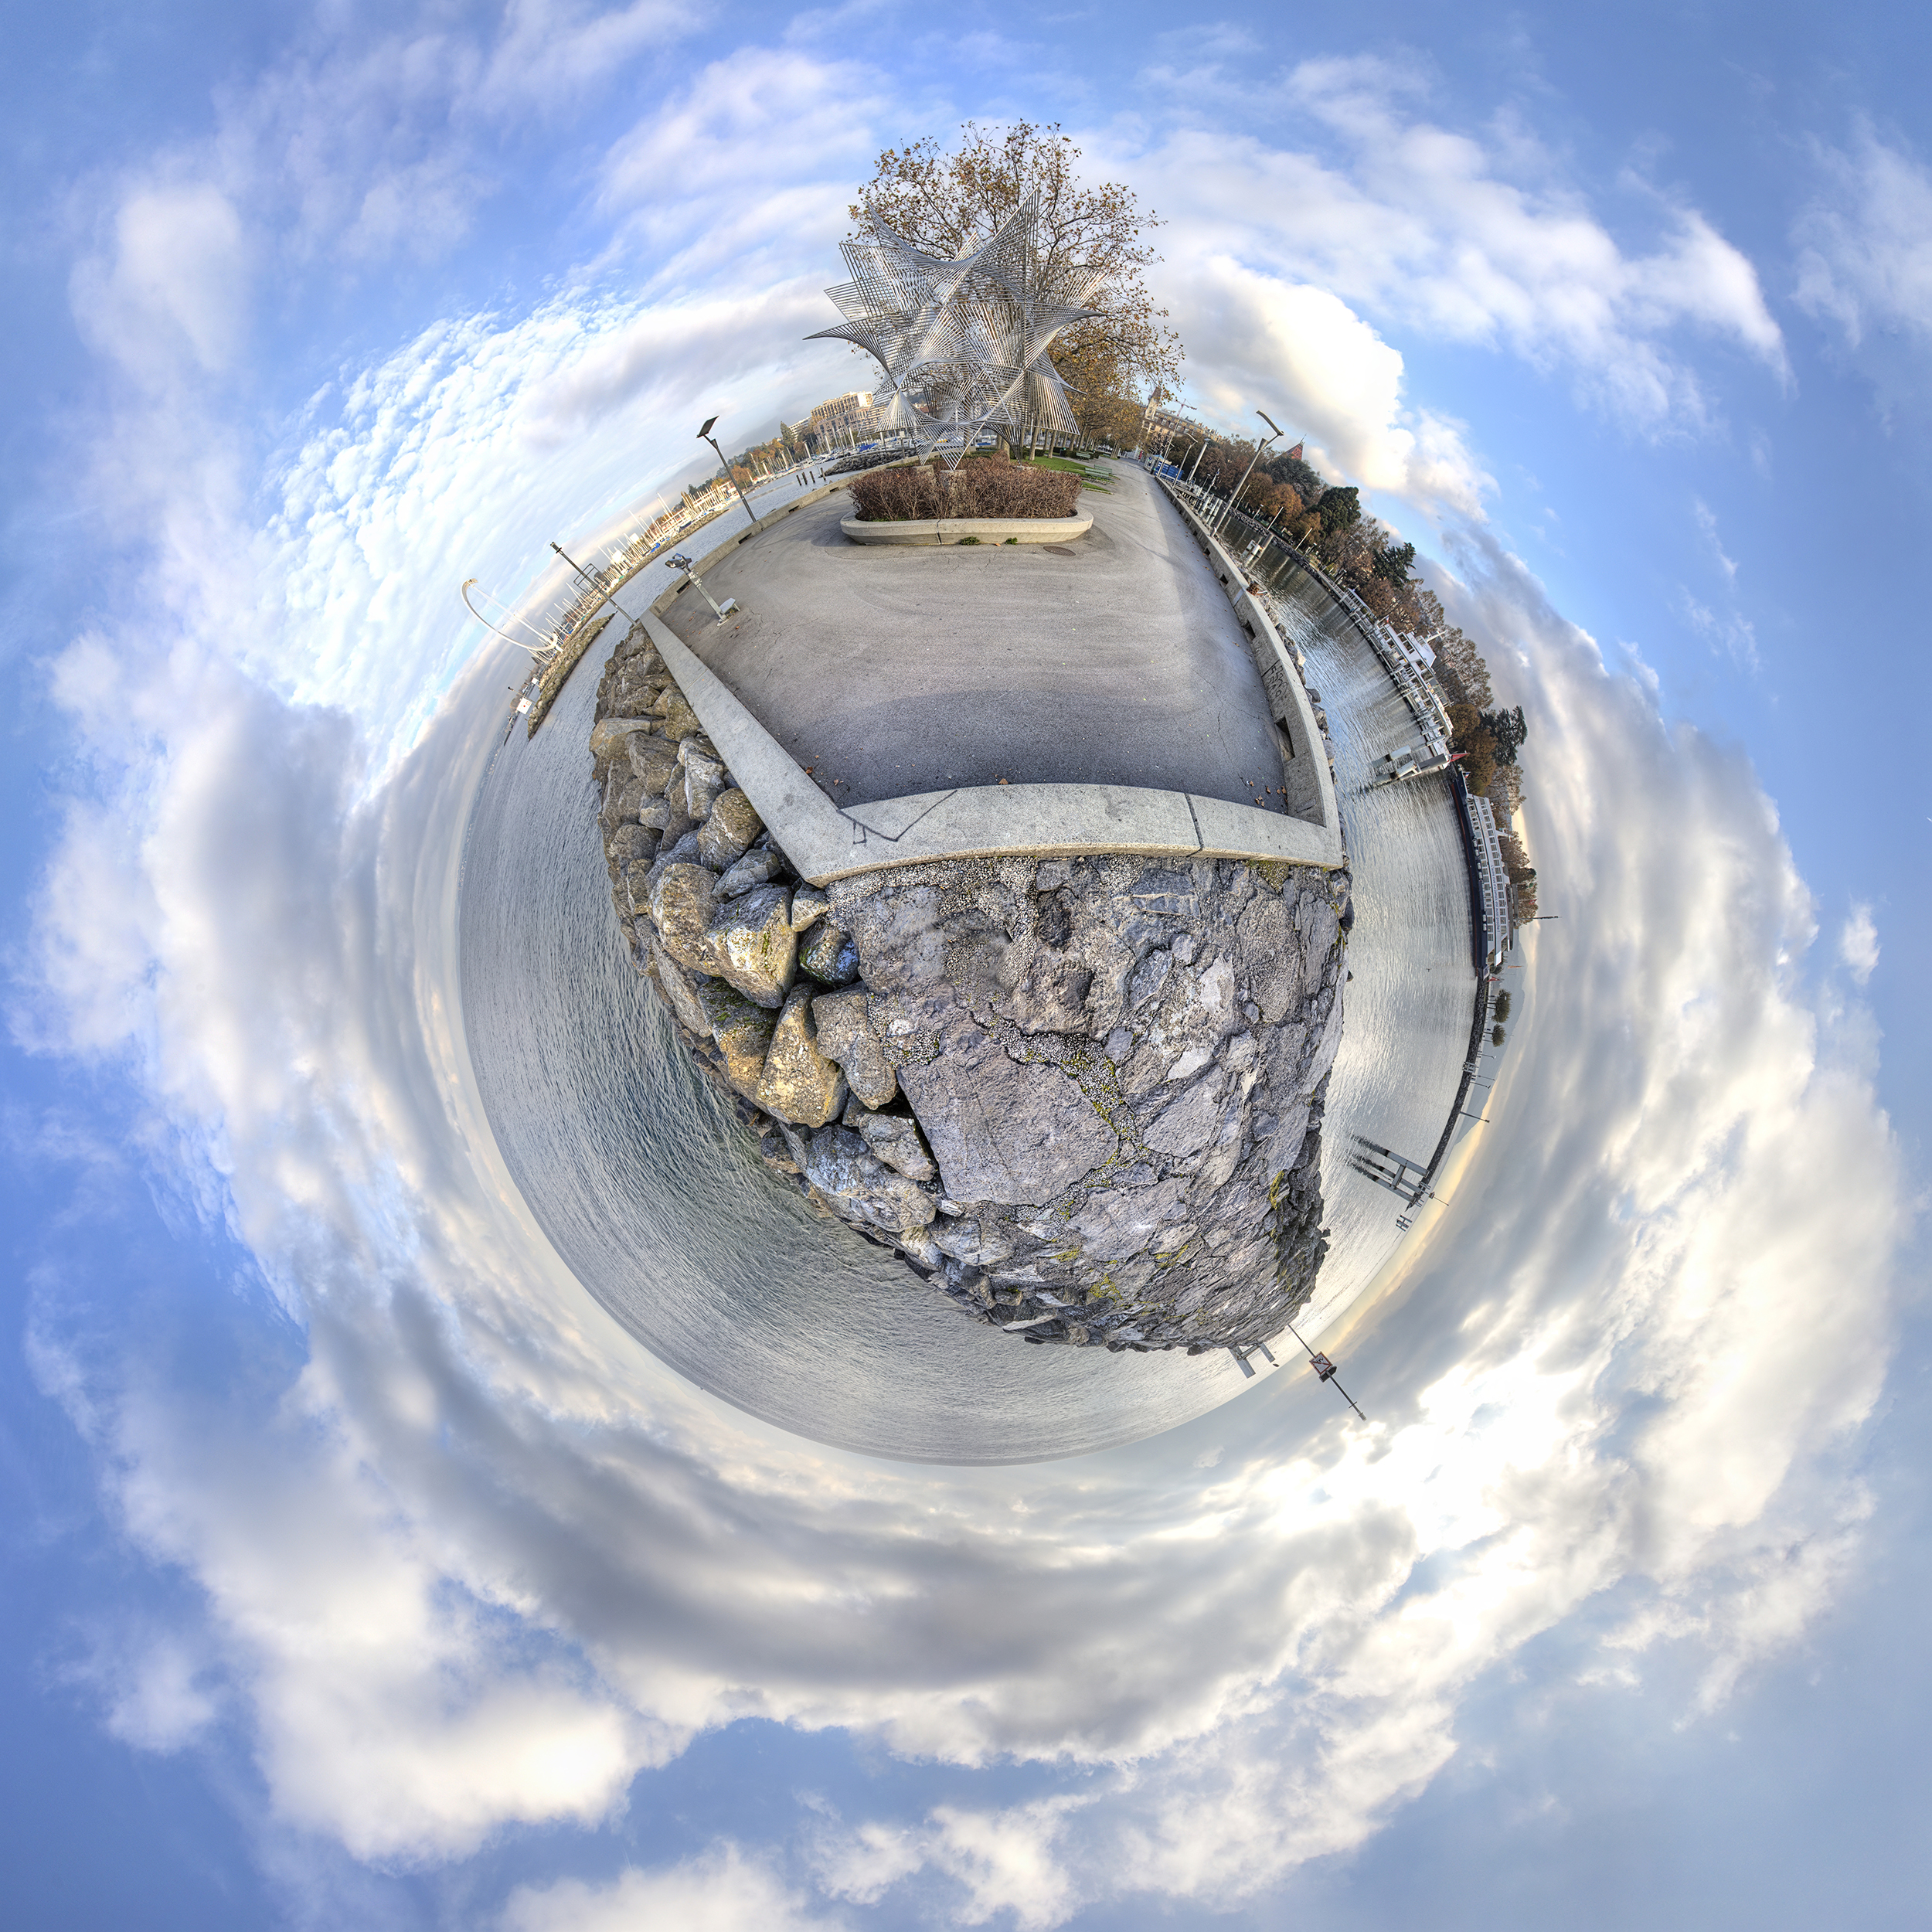 LittlePlanet Ouchy rose des vents_s.jpg